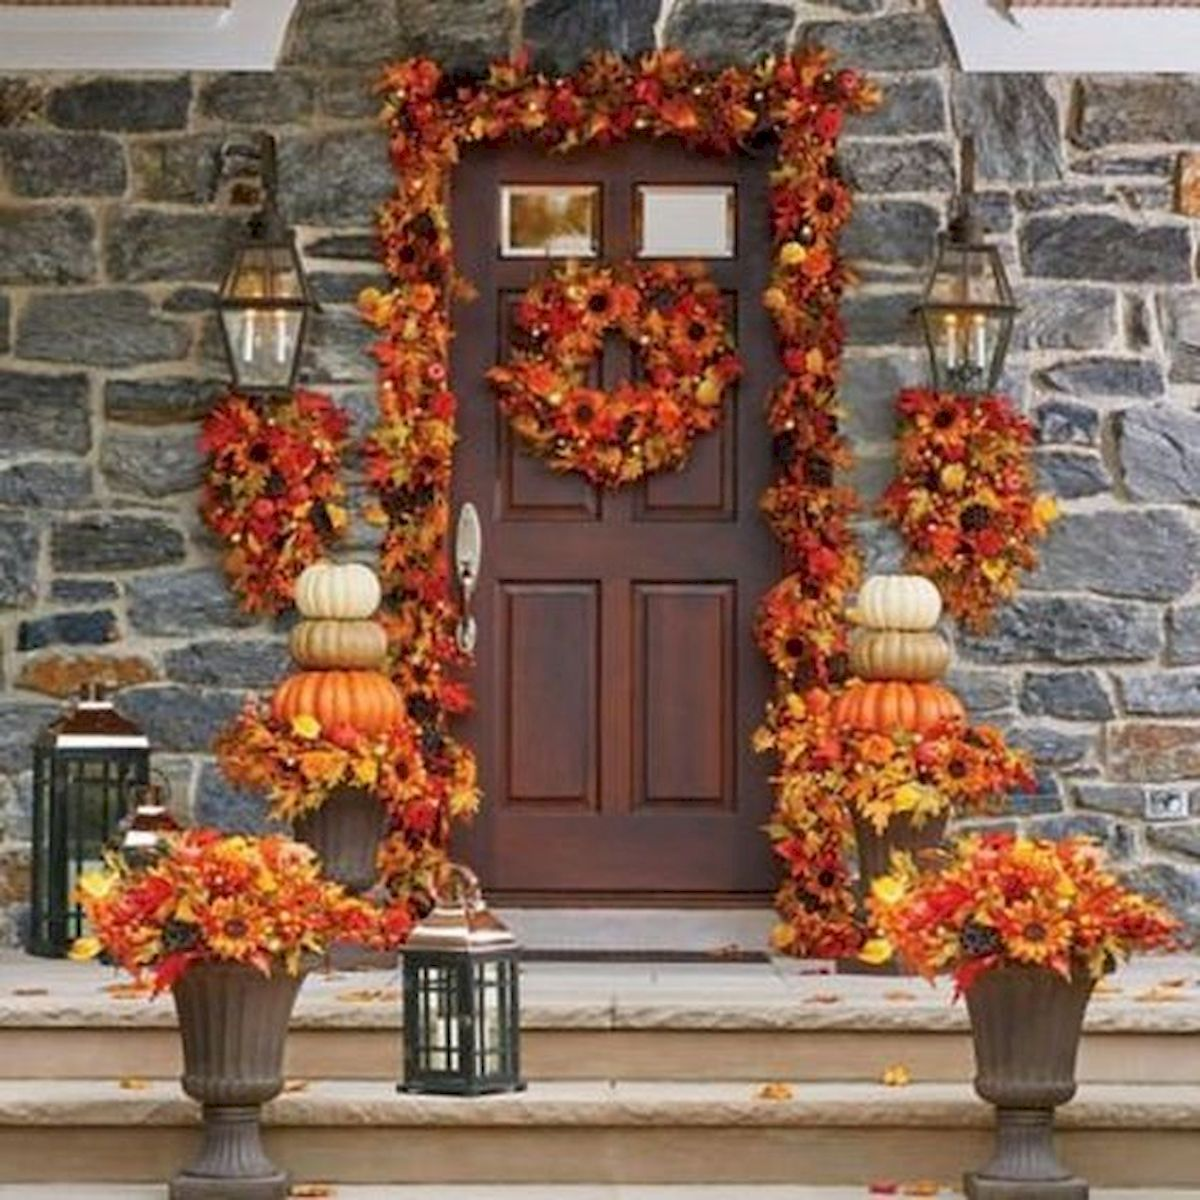 40 Beautiful Fall Front Porch Decorating Ideas That Will Make Your Home Look Amazing (10)